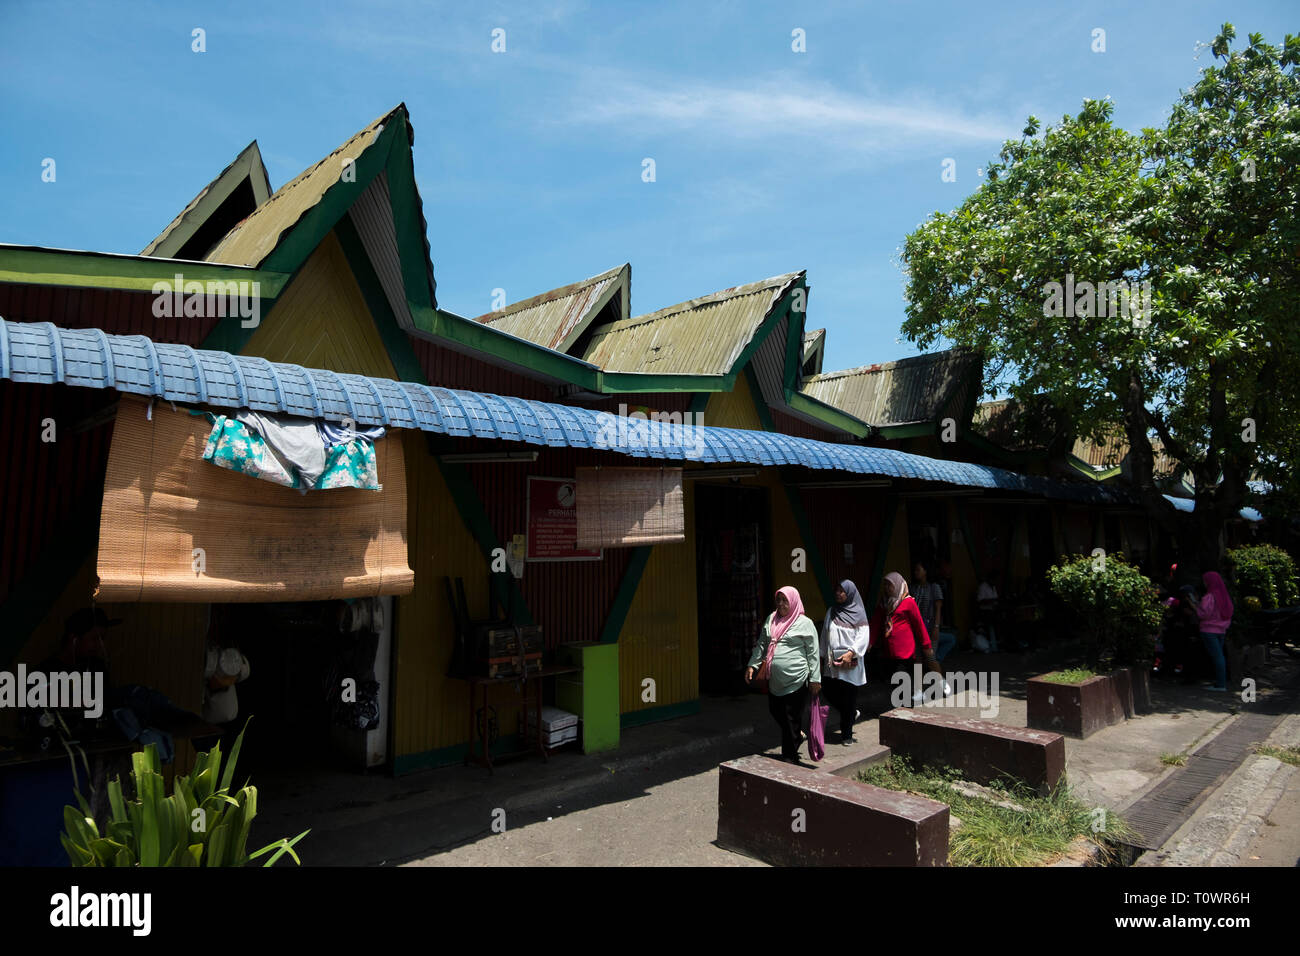 Exterior view of the traditional architecture of the handicraft market in Kota Kinabalu, Sabah, Borneo, Malaysia. - Stock Image